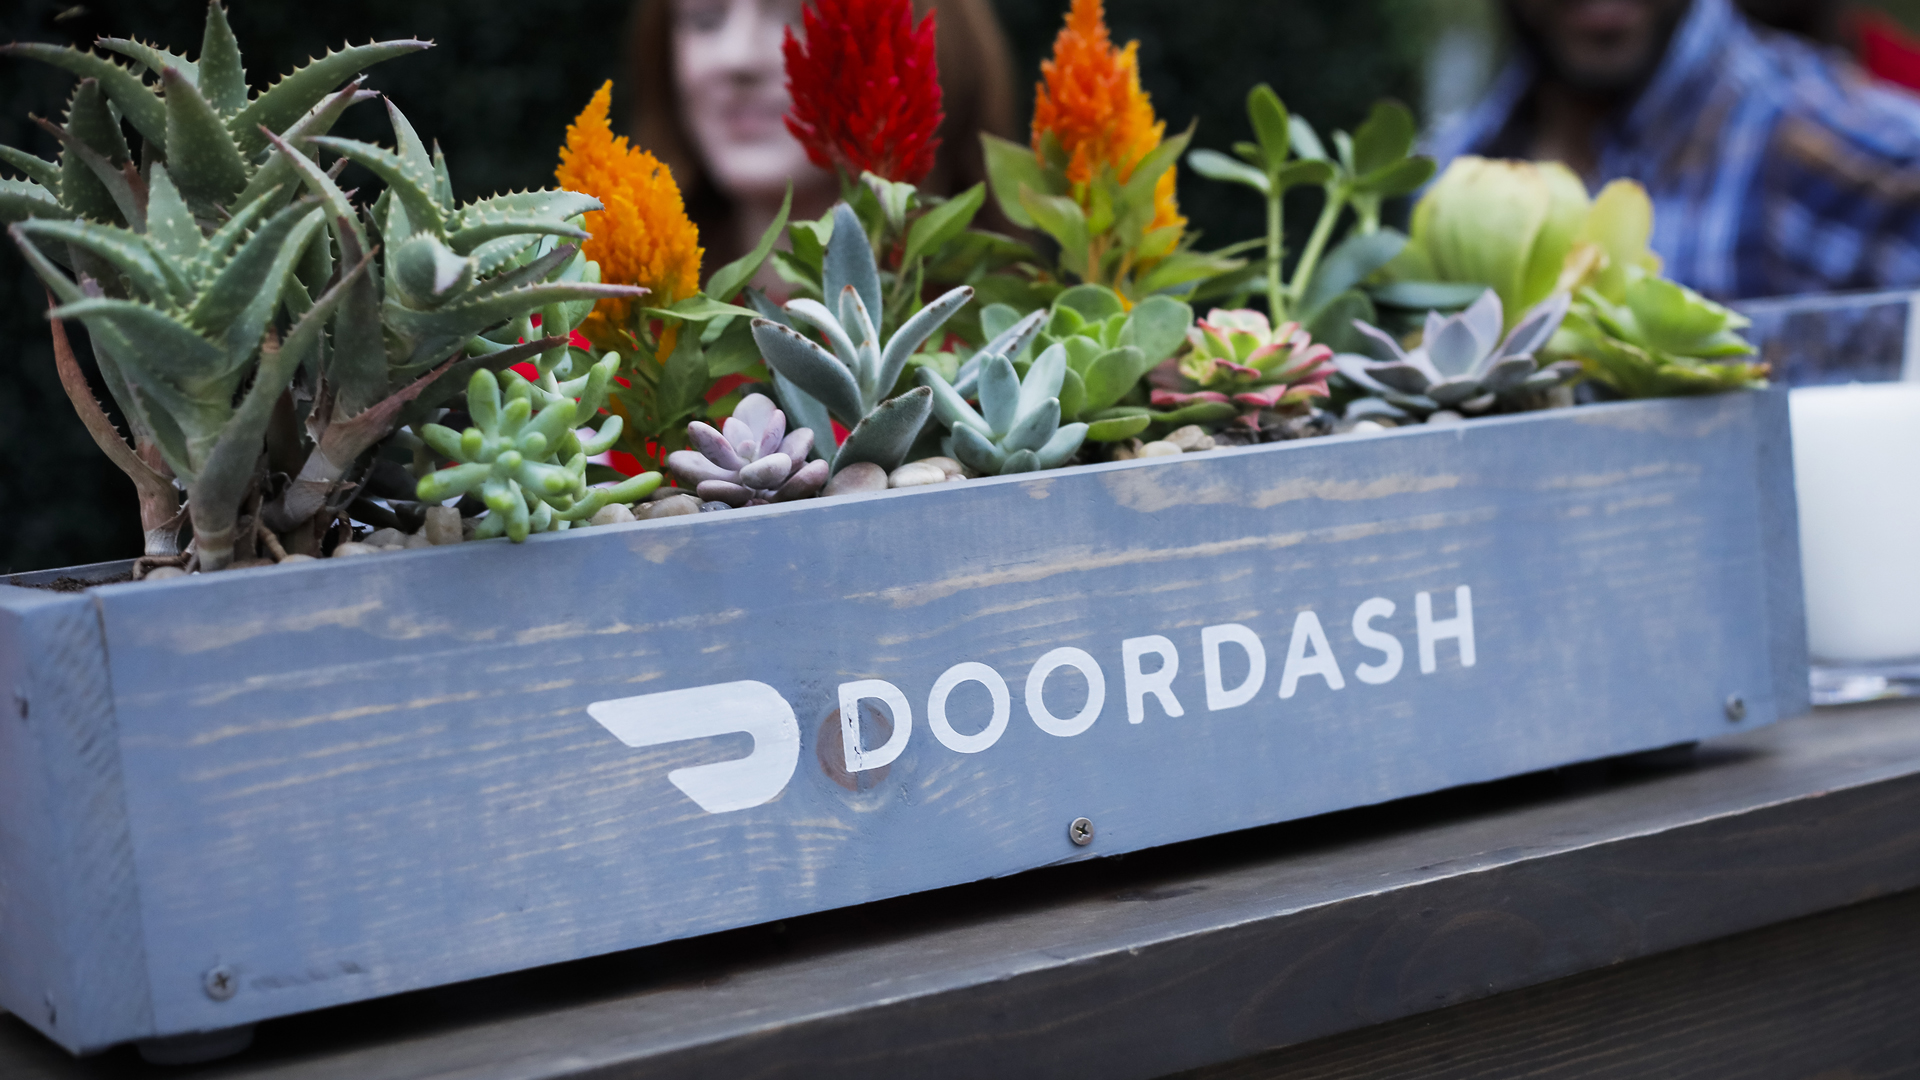 A view of general atmosphere at the DoorDash booth at 'Night Market' presented by The Los Angeles Times on May 08, 2019 in Los Angeles, California. (Credit: Tibrina Hobson/Getty Images for Los Angeles Times Food Bowl)